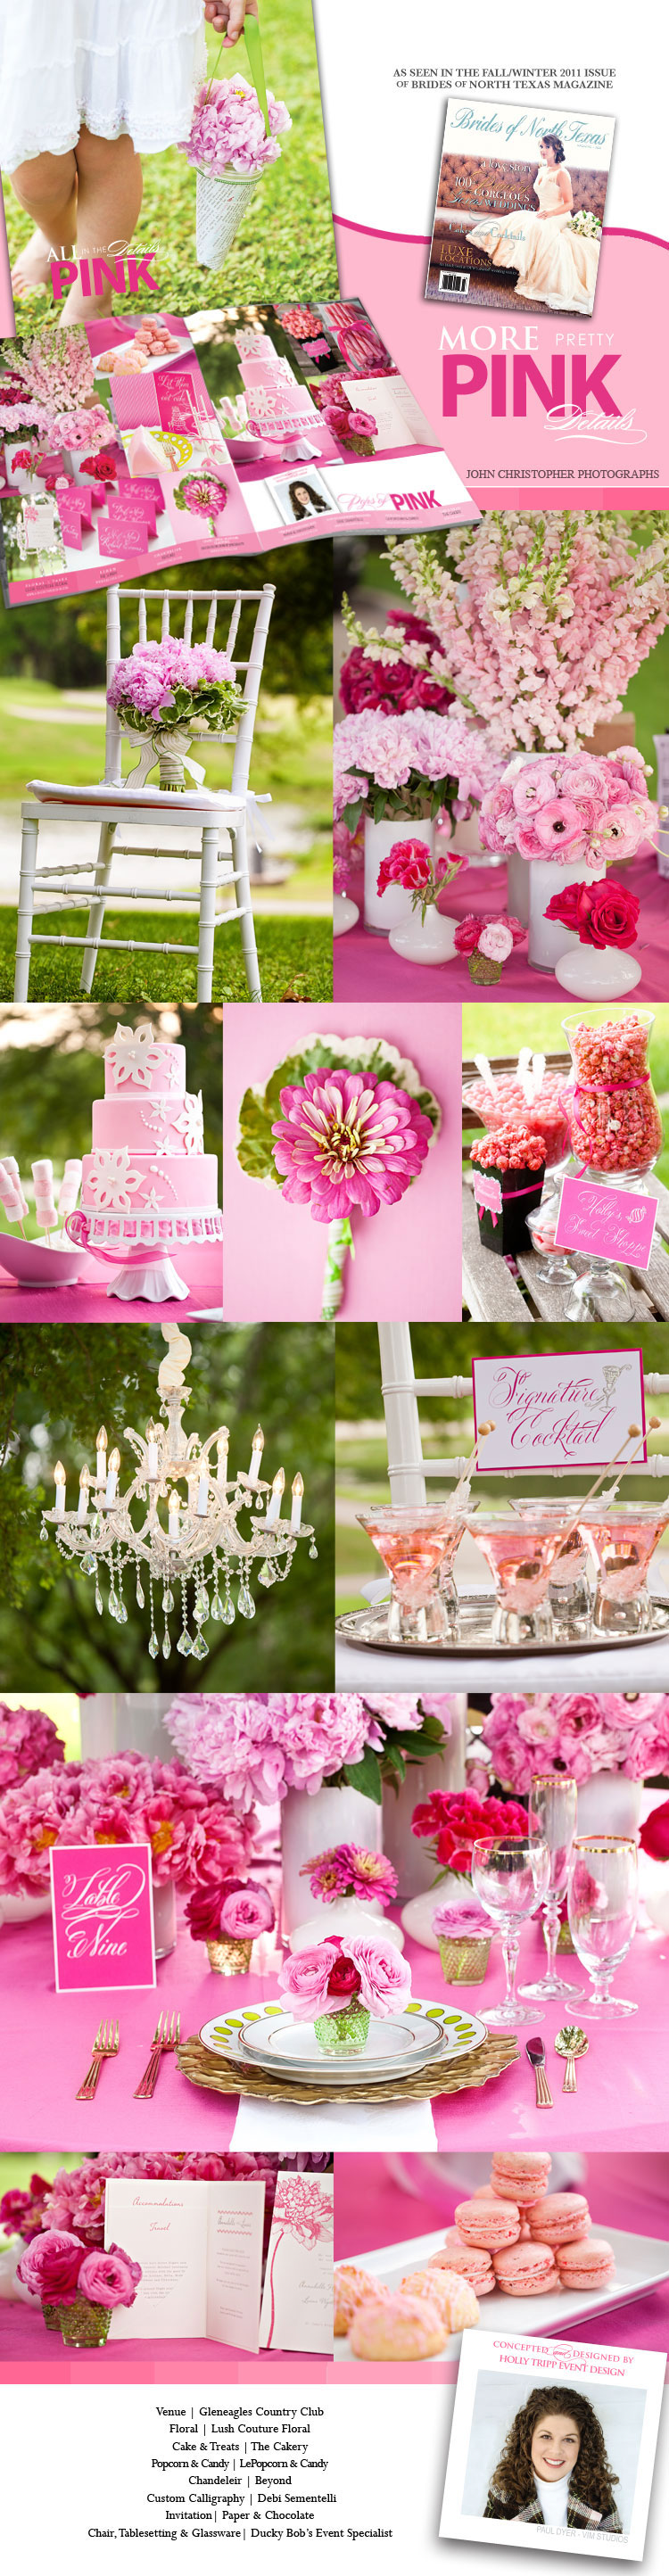 Dallas Fort Worth wedding planner Holly Tripp Event Design